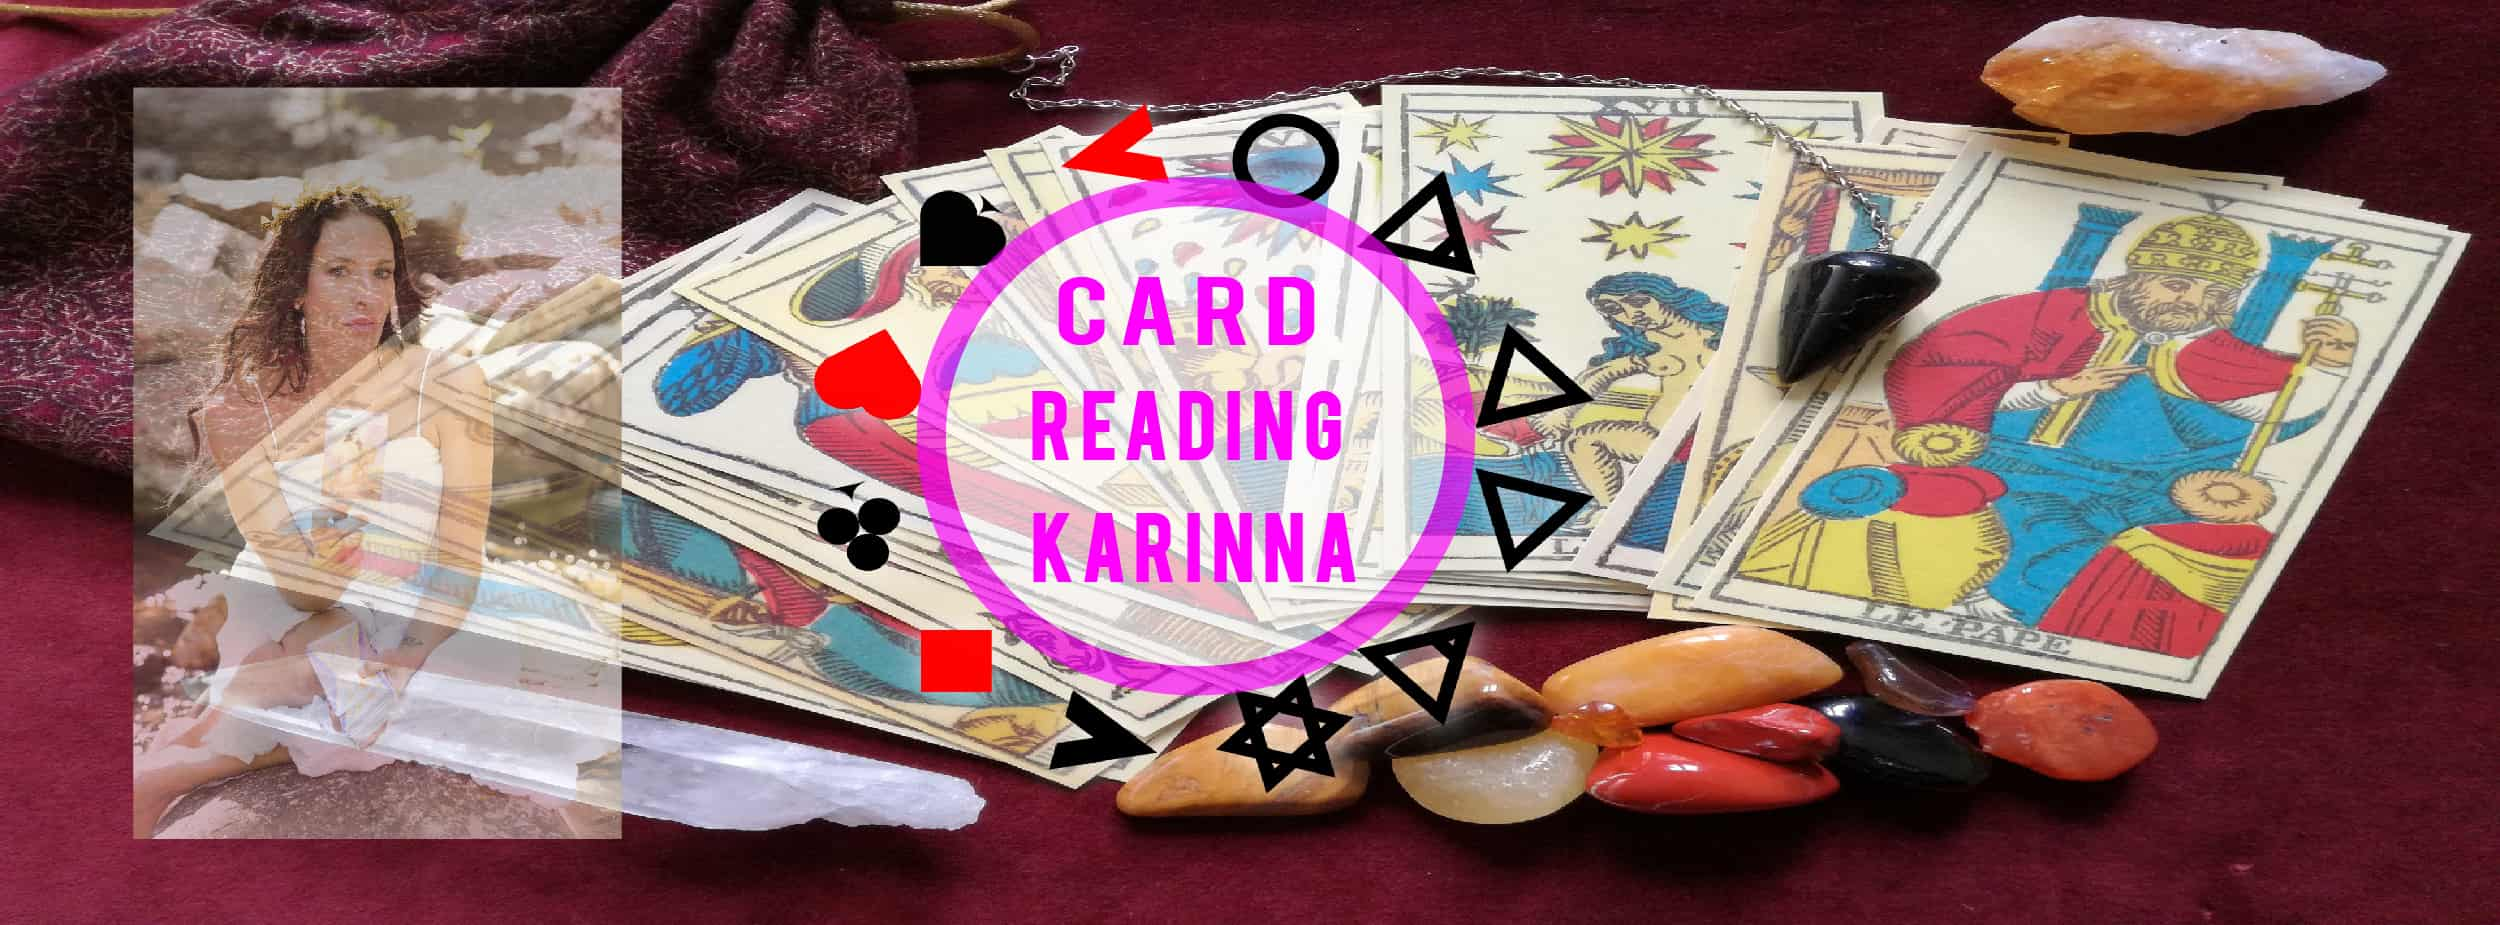 CARD-READING-NEAR-ME